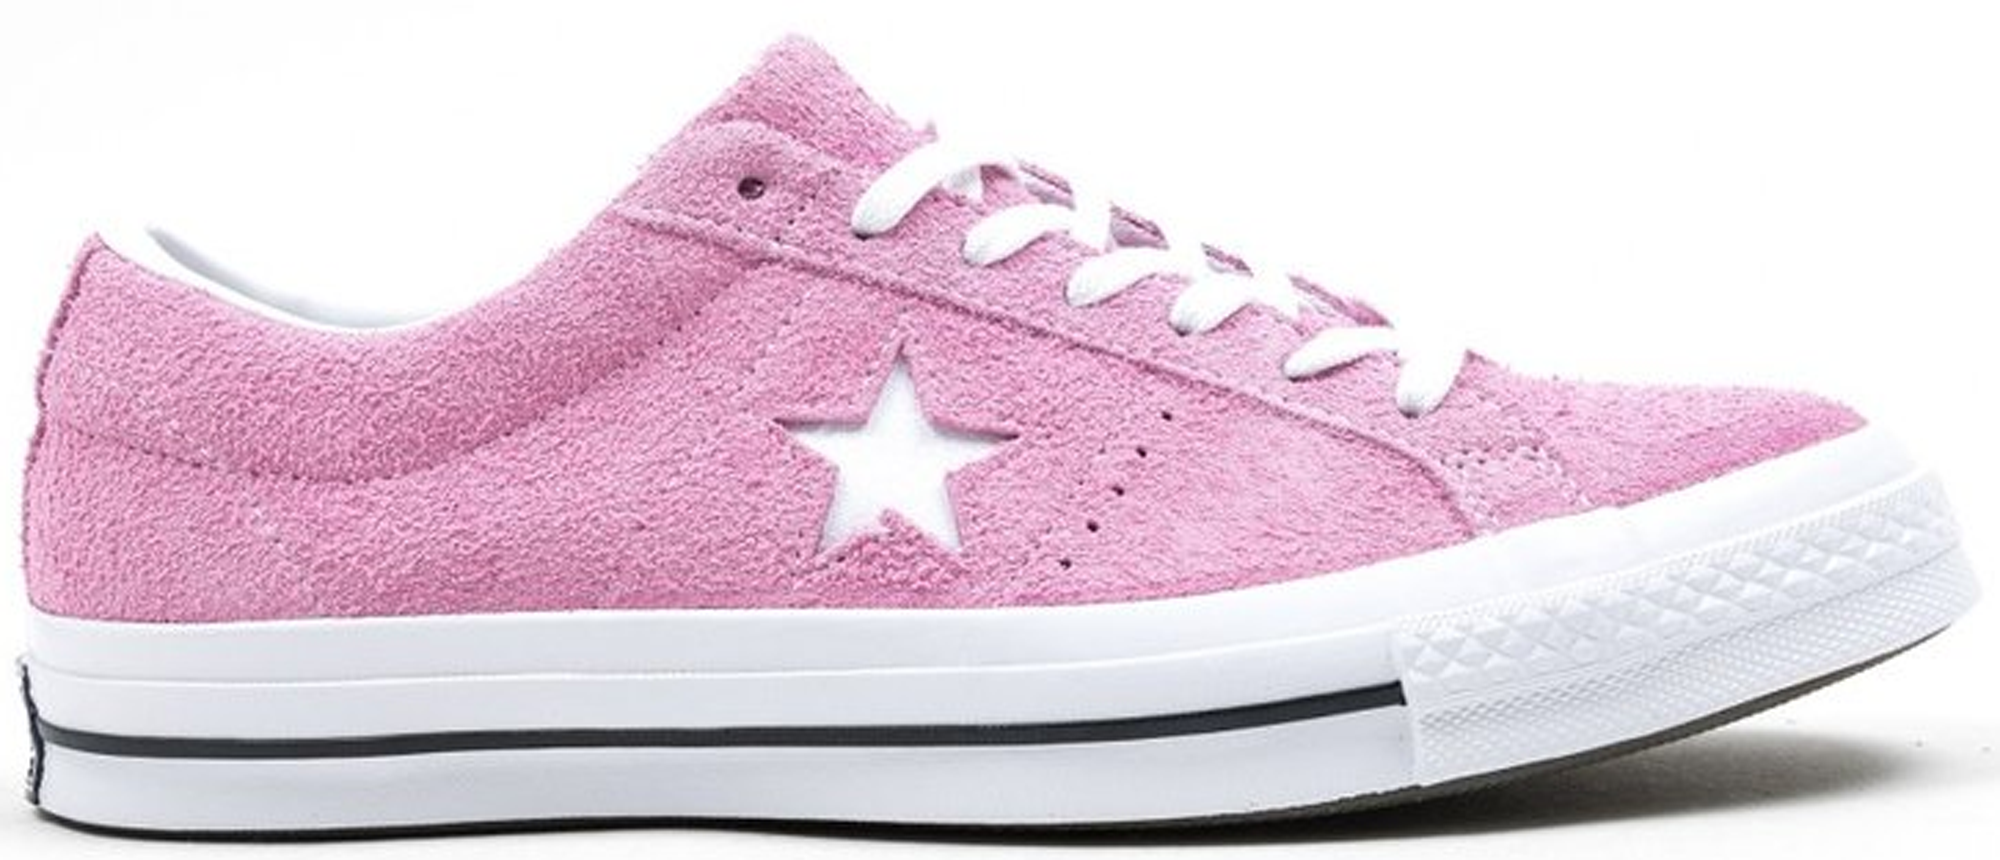 Converse One Star Ox Pink - 159492C